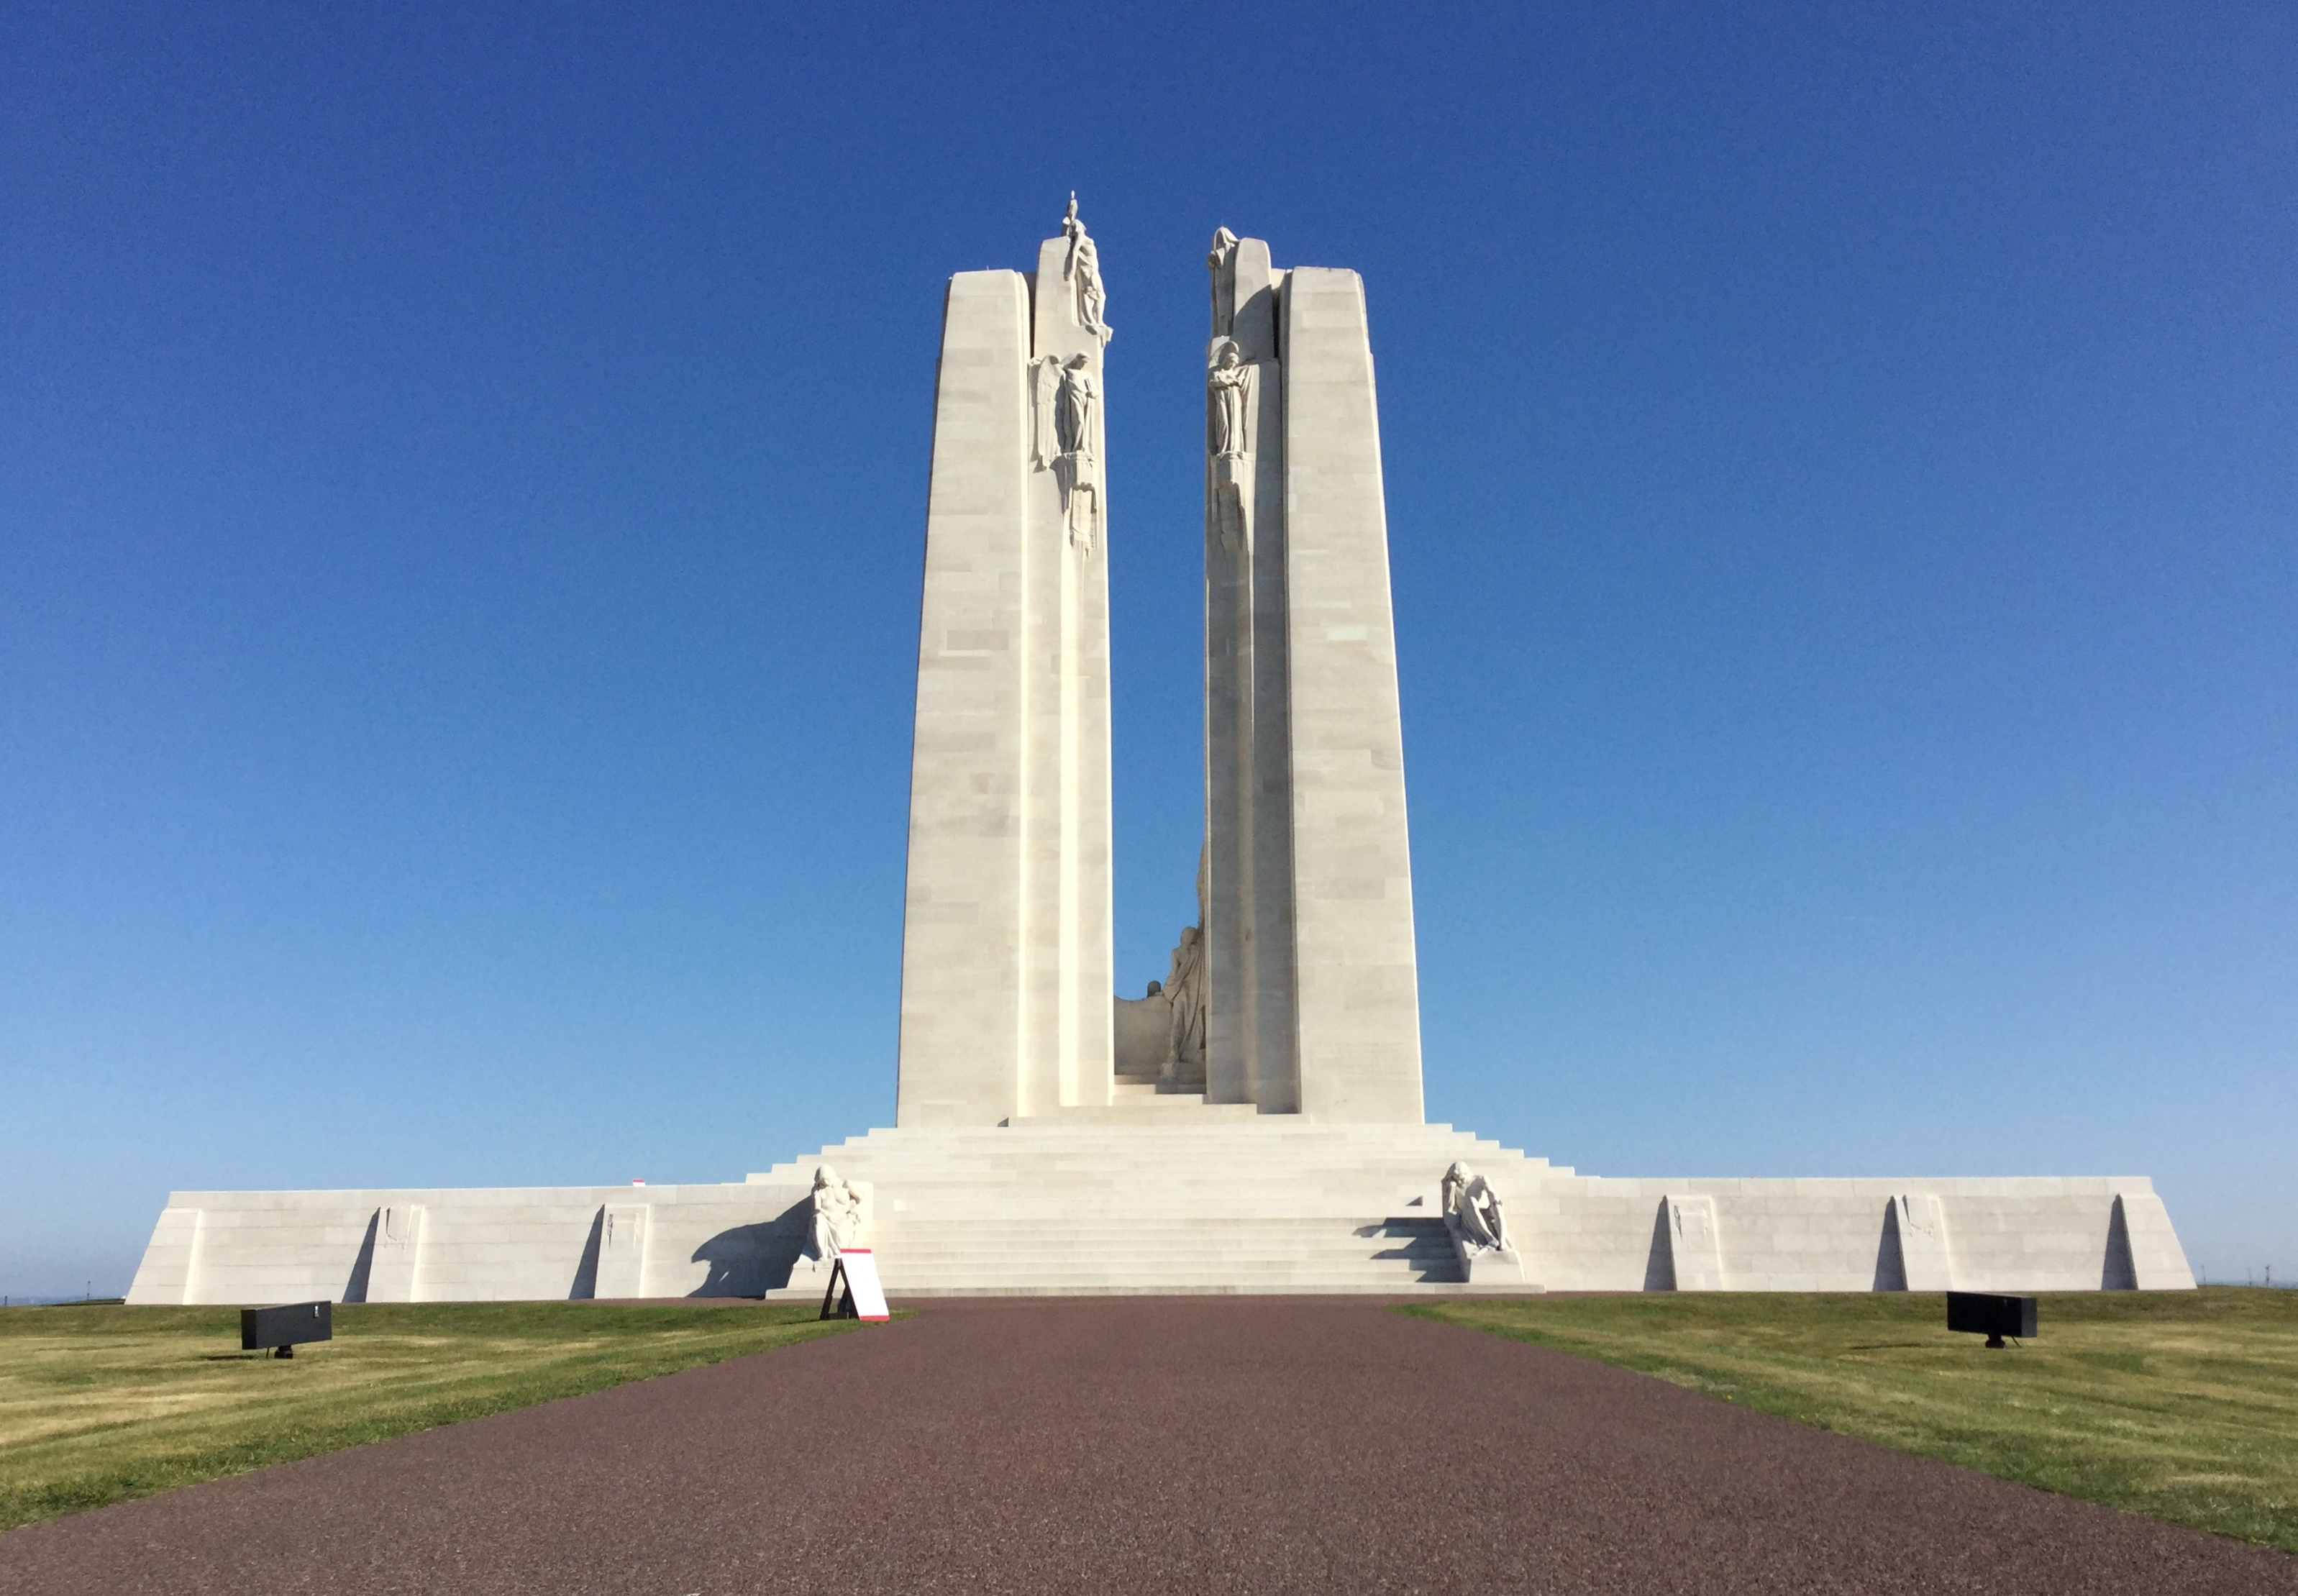 7 April 2019 - Toronto, ON - Commemoration of the Battle of Vimy Ridge